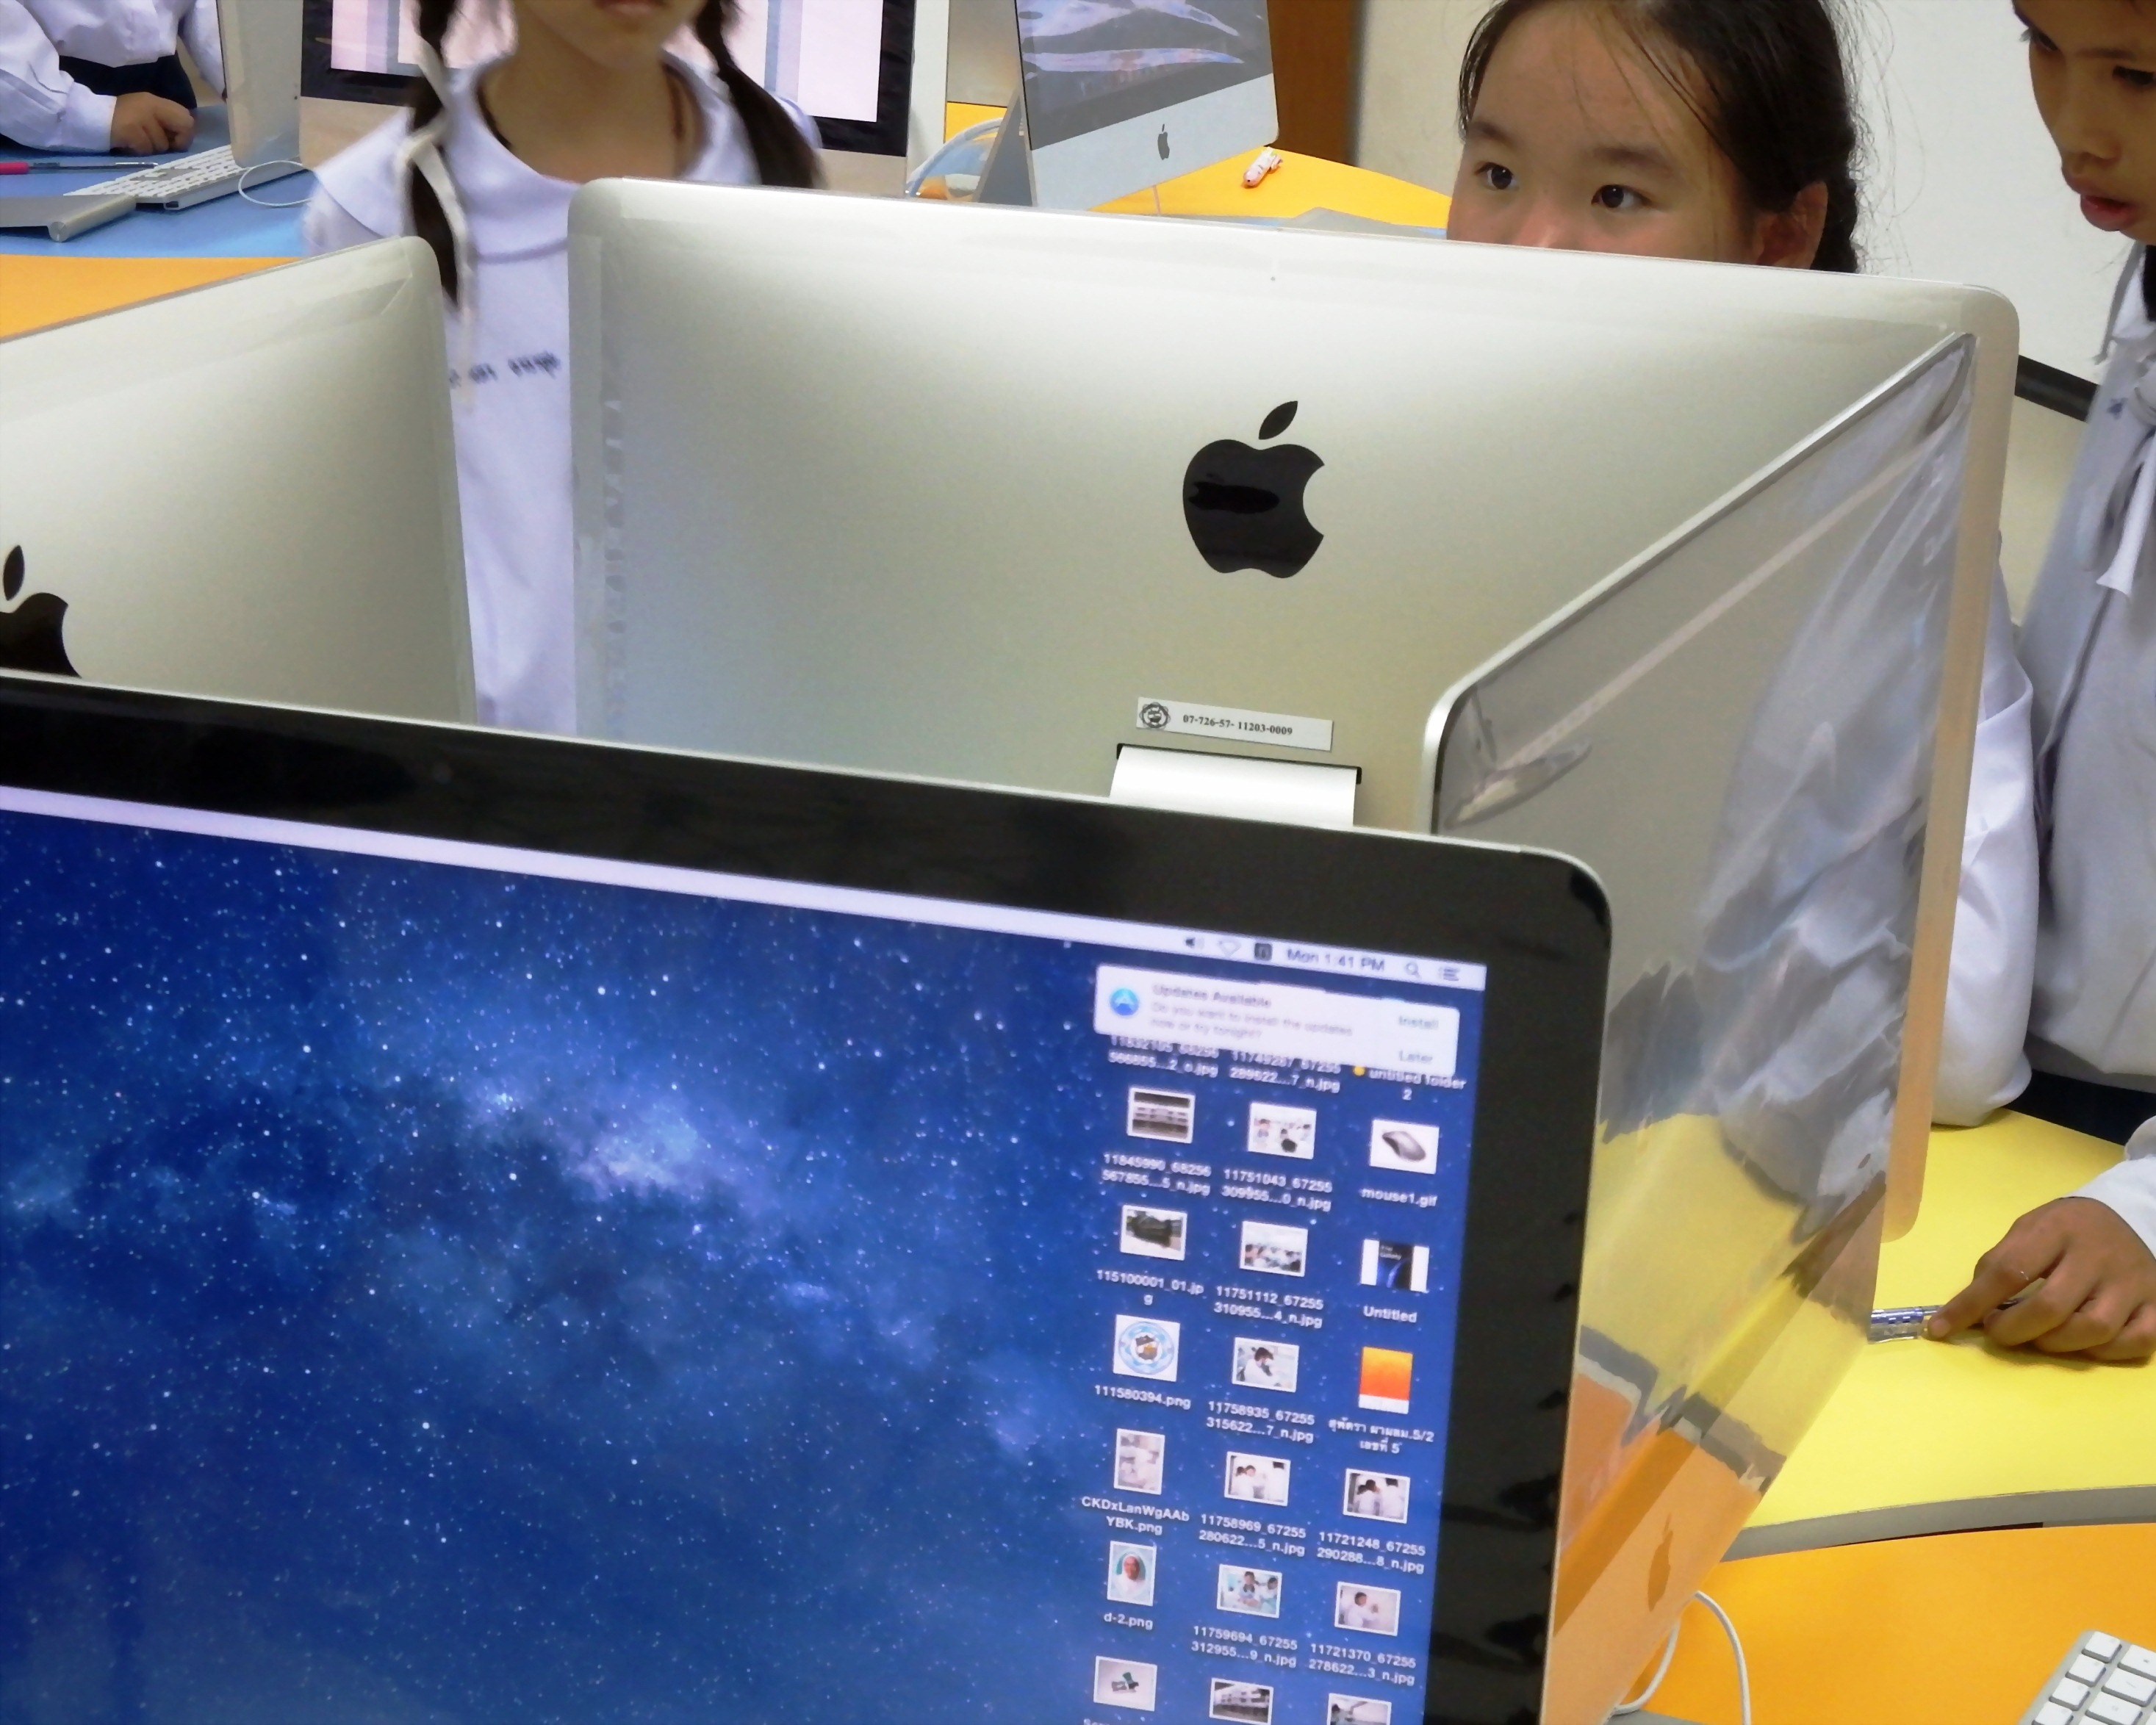 School students using Apple Macs, Apple, Mouse, Working, Work, HQ Photo